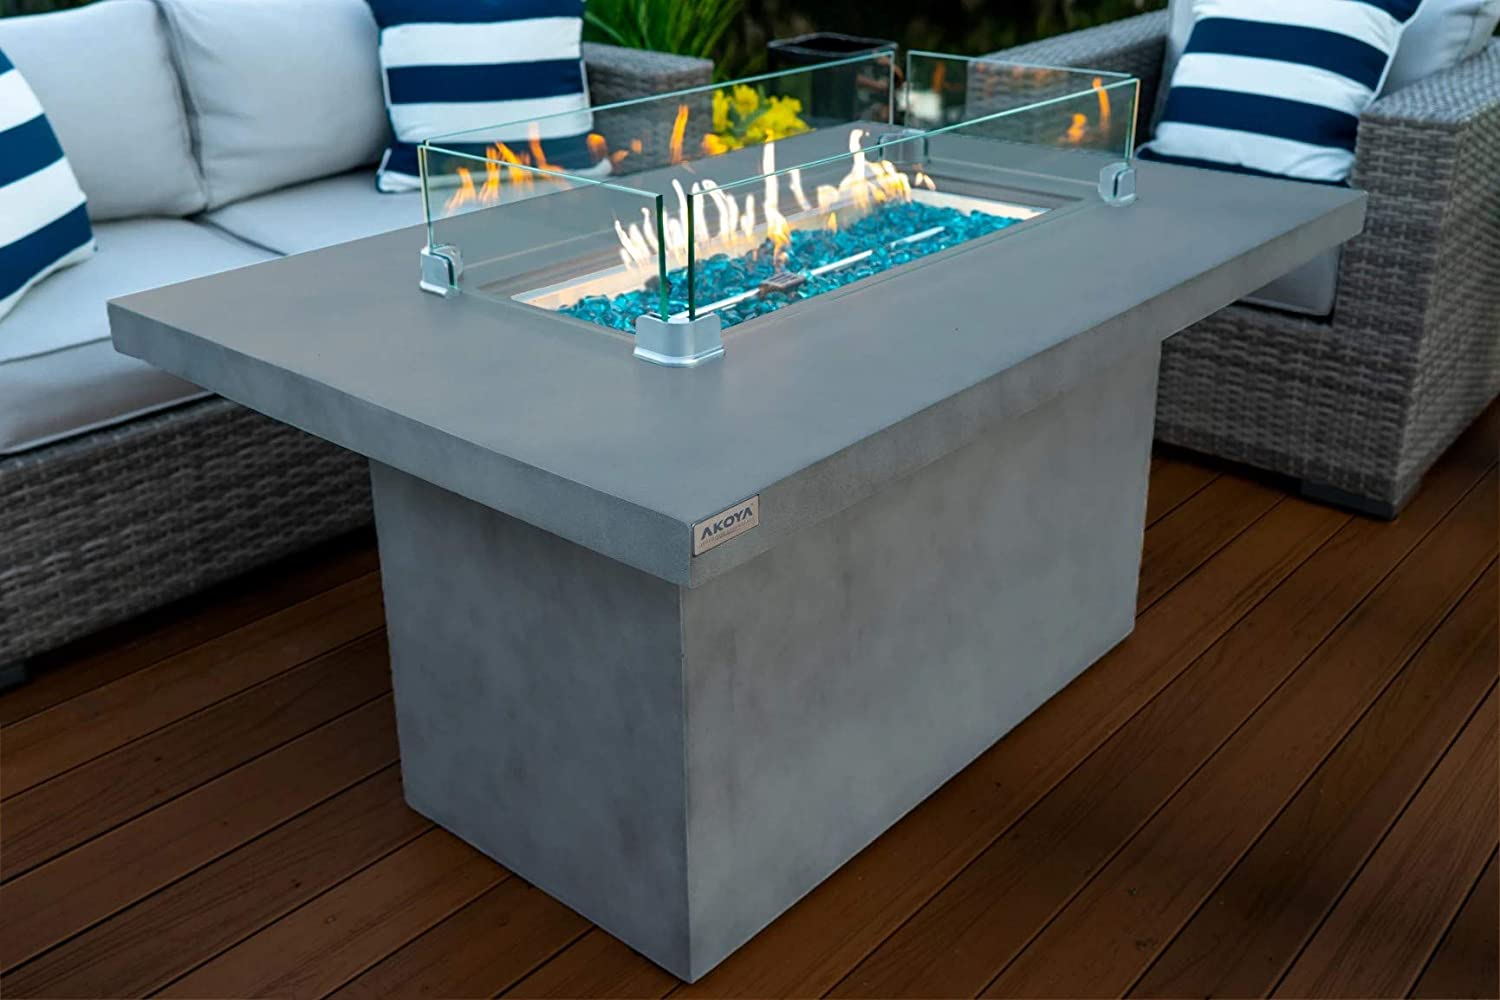 AKOYA Outdoor Essentials Concrete Fire Table